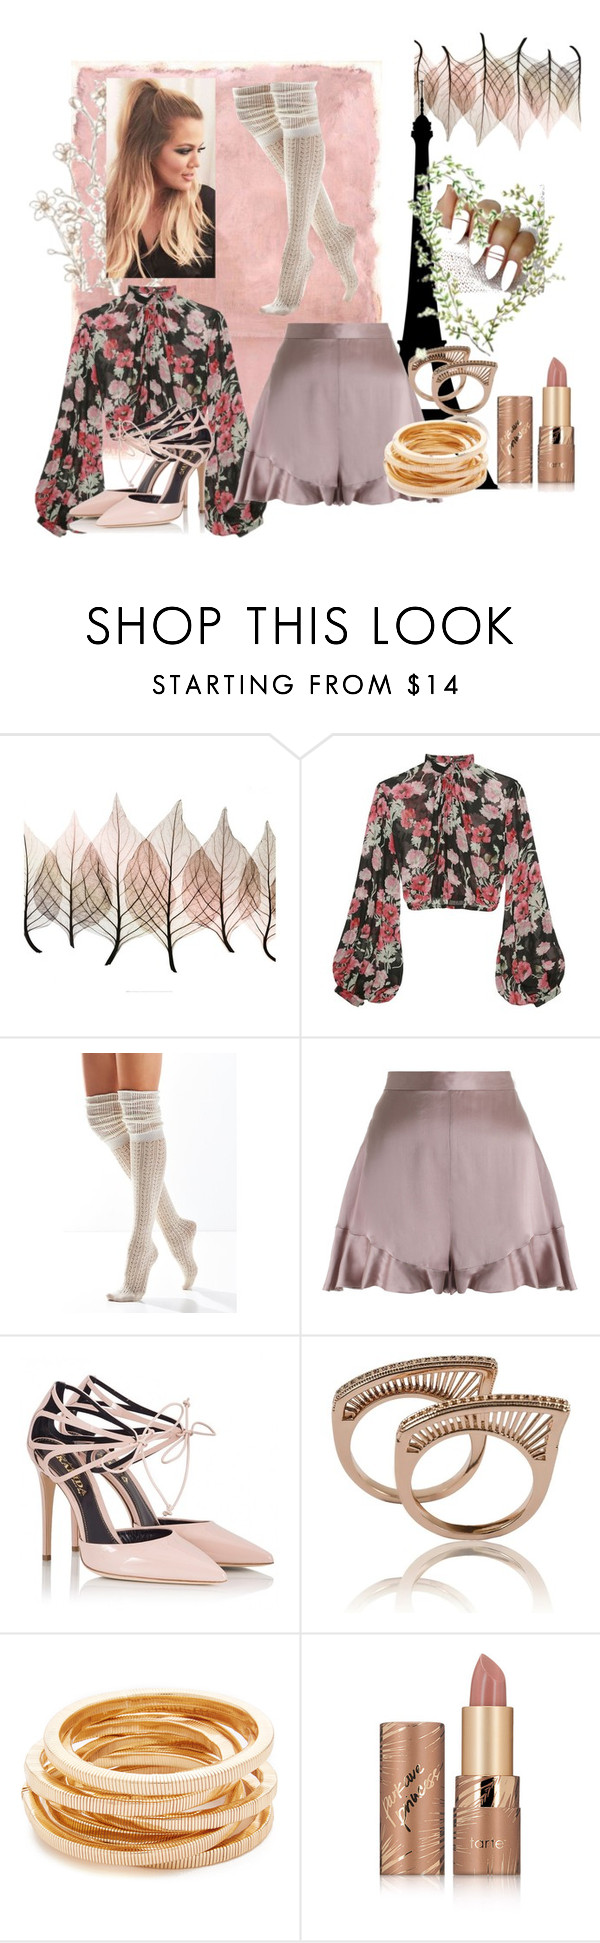 """""""Paris Excursion"""" by adele-h-pocketbook ❤ liked on Polyvore featuring Rothko, Jill Stuart, Urban Outfitters, Zimmermann, Fratelli Karida, Kenneth Jay Lane, tarte and floralprint"""